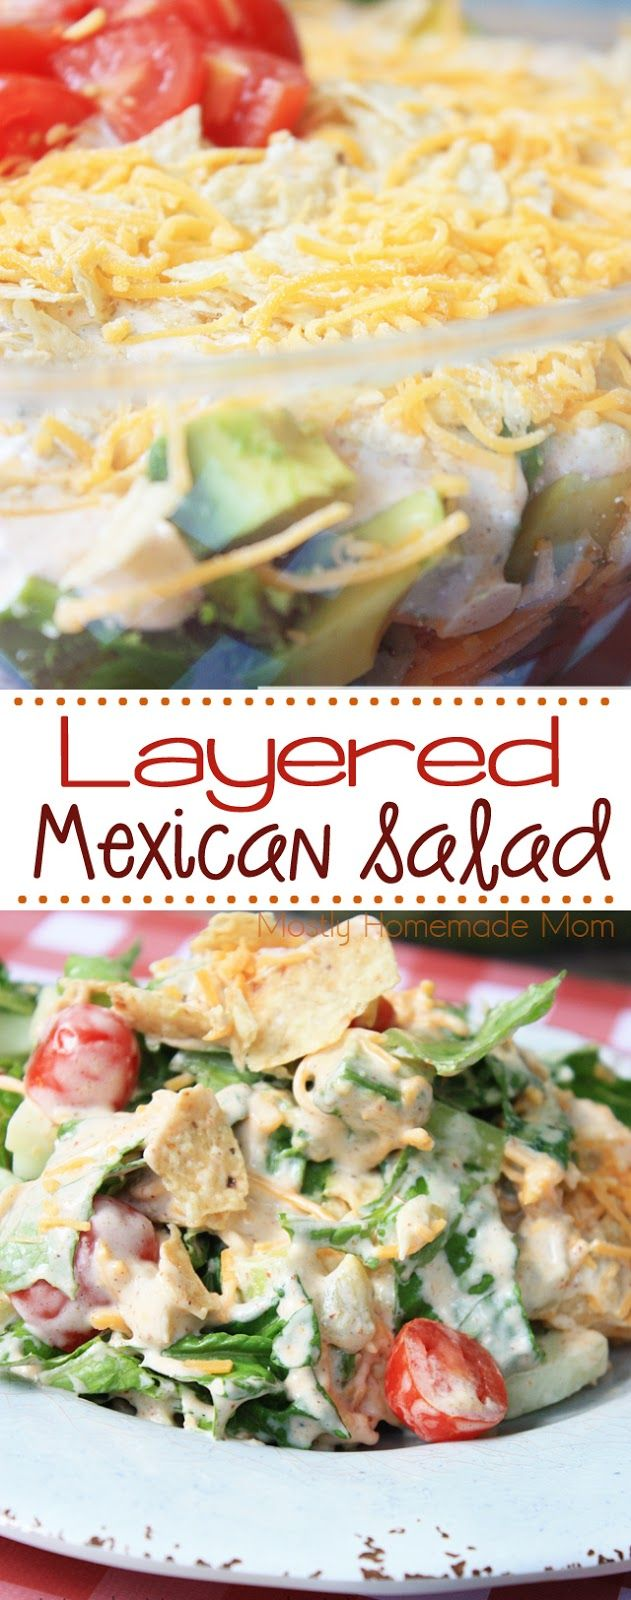 Layered Mexican Salad                                                                                                                                                                                 More